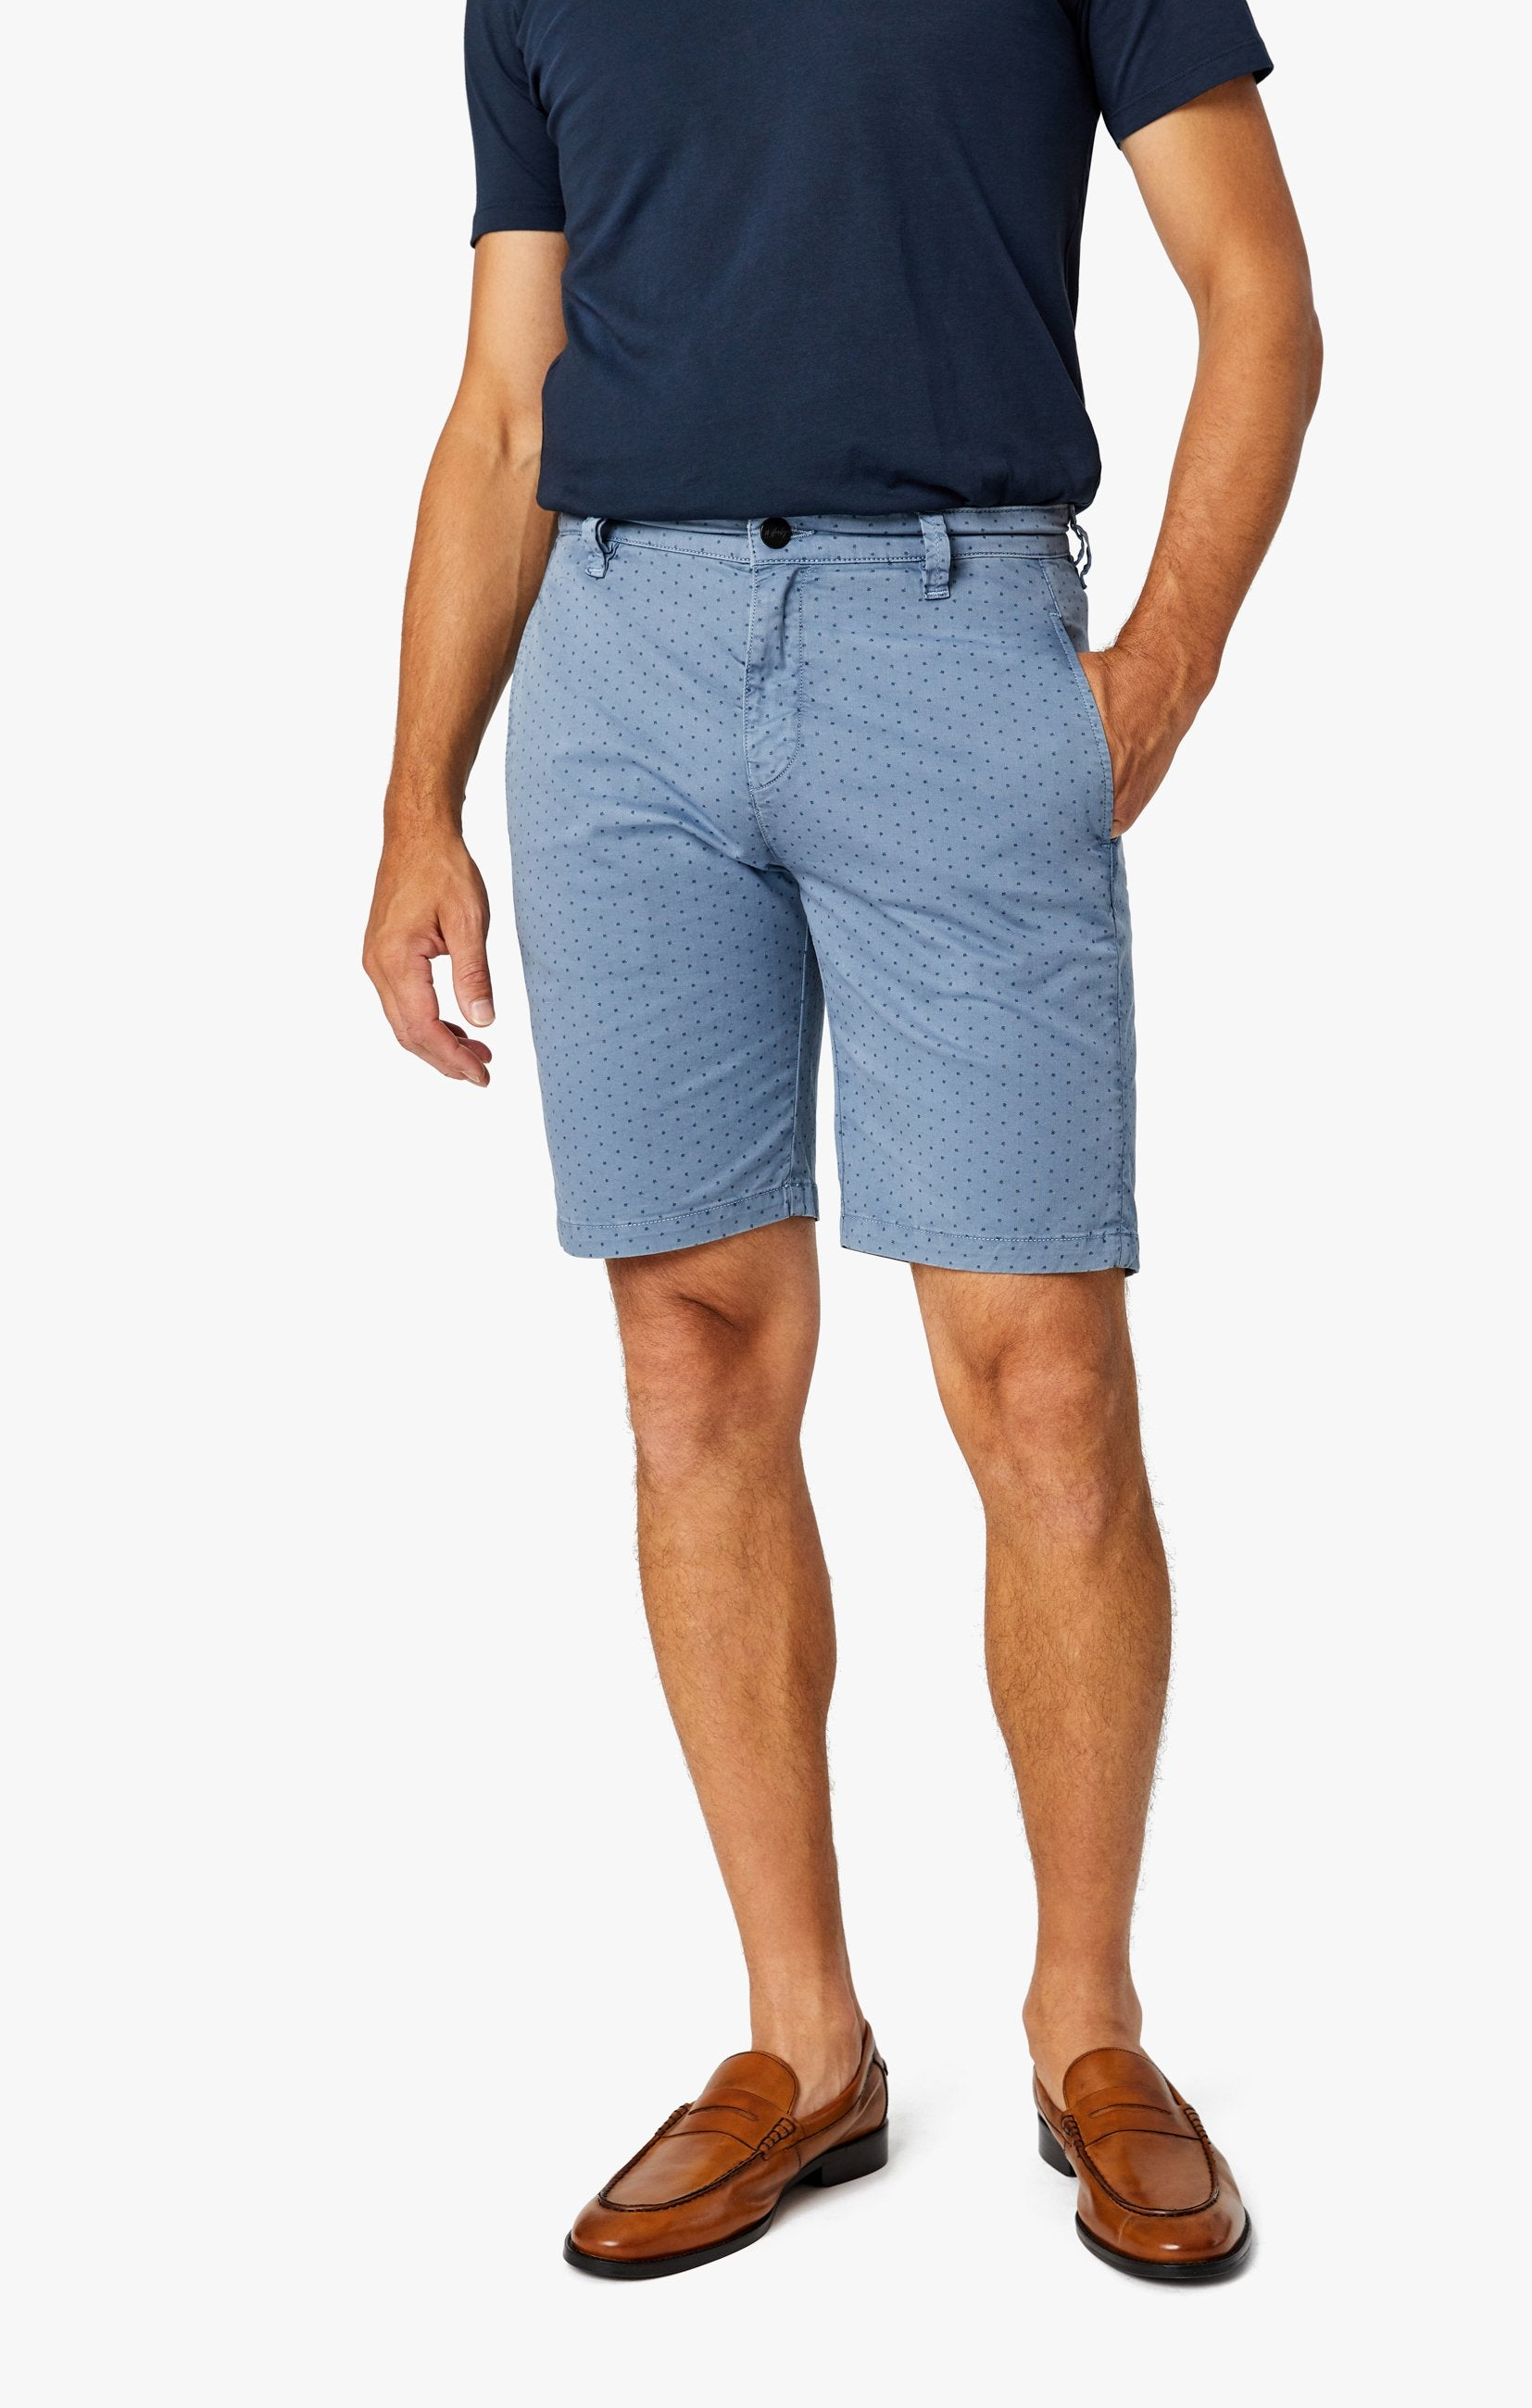 Arizona Slim Shorts in Blue Fancy Image 3